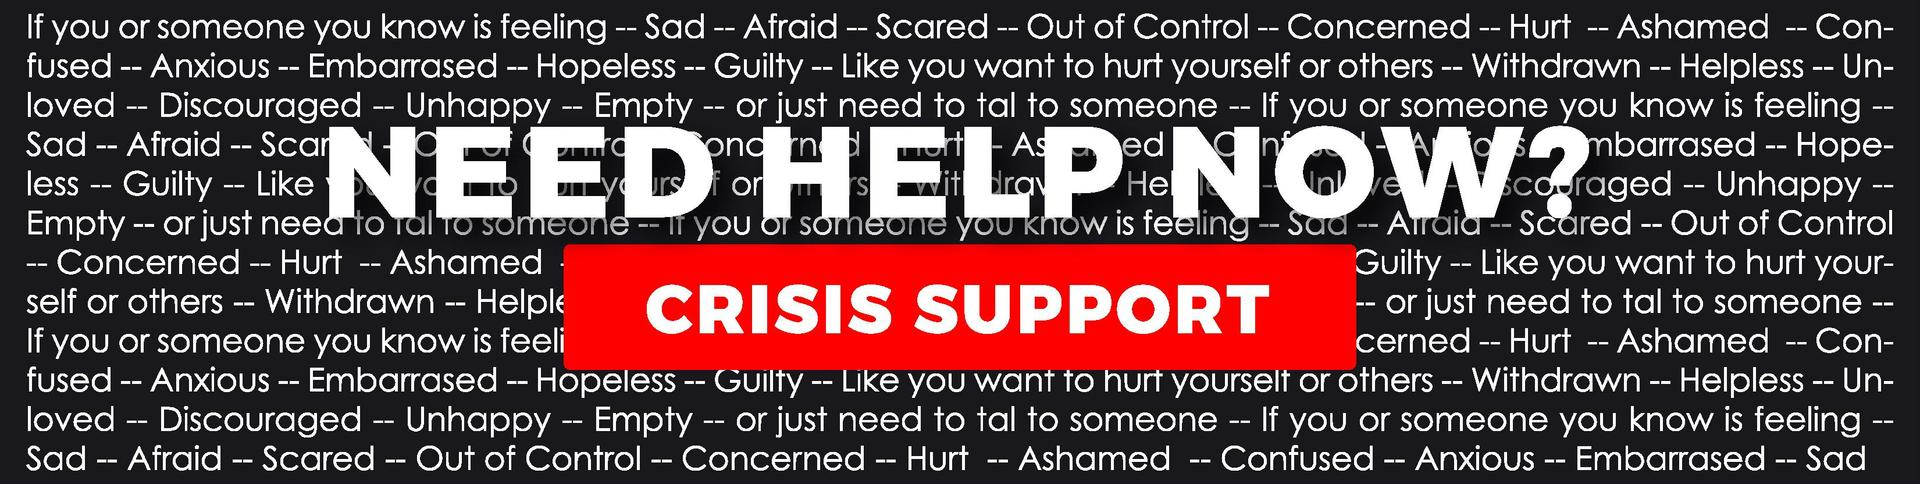 NAWC Crisis Support